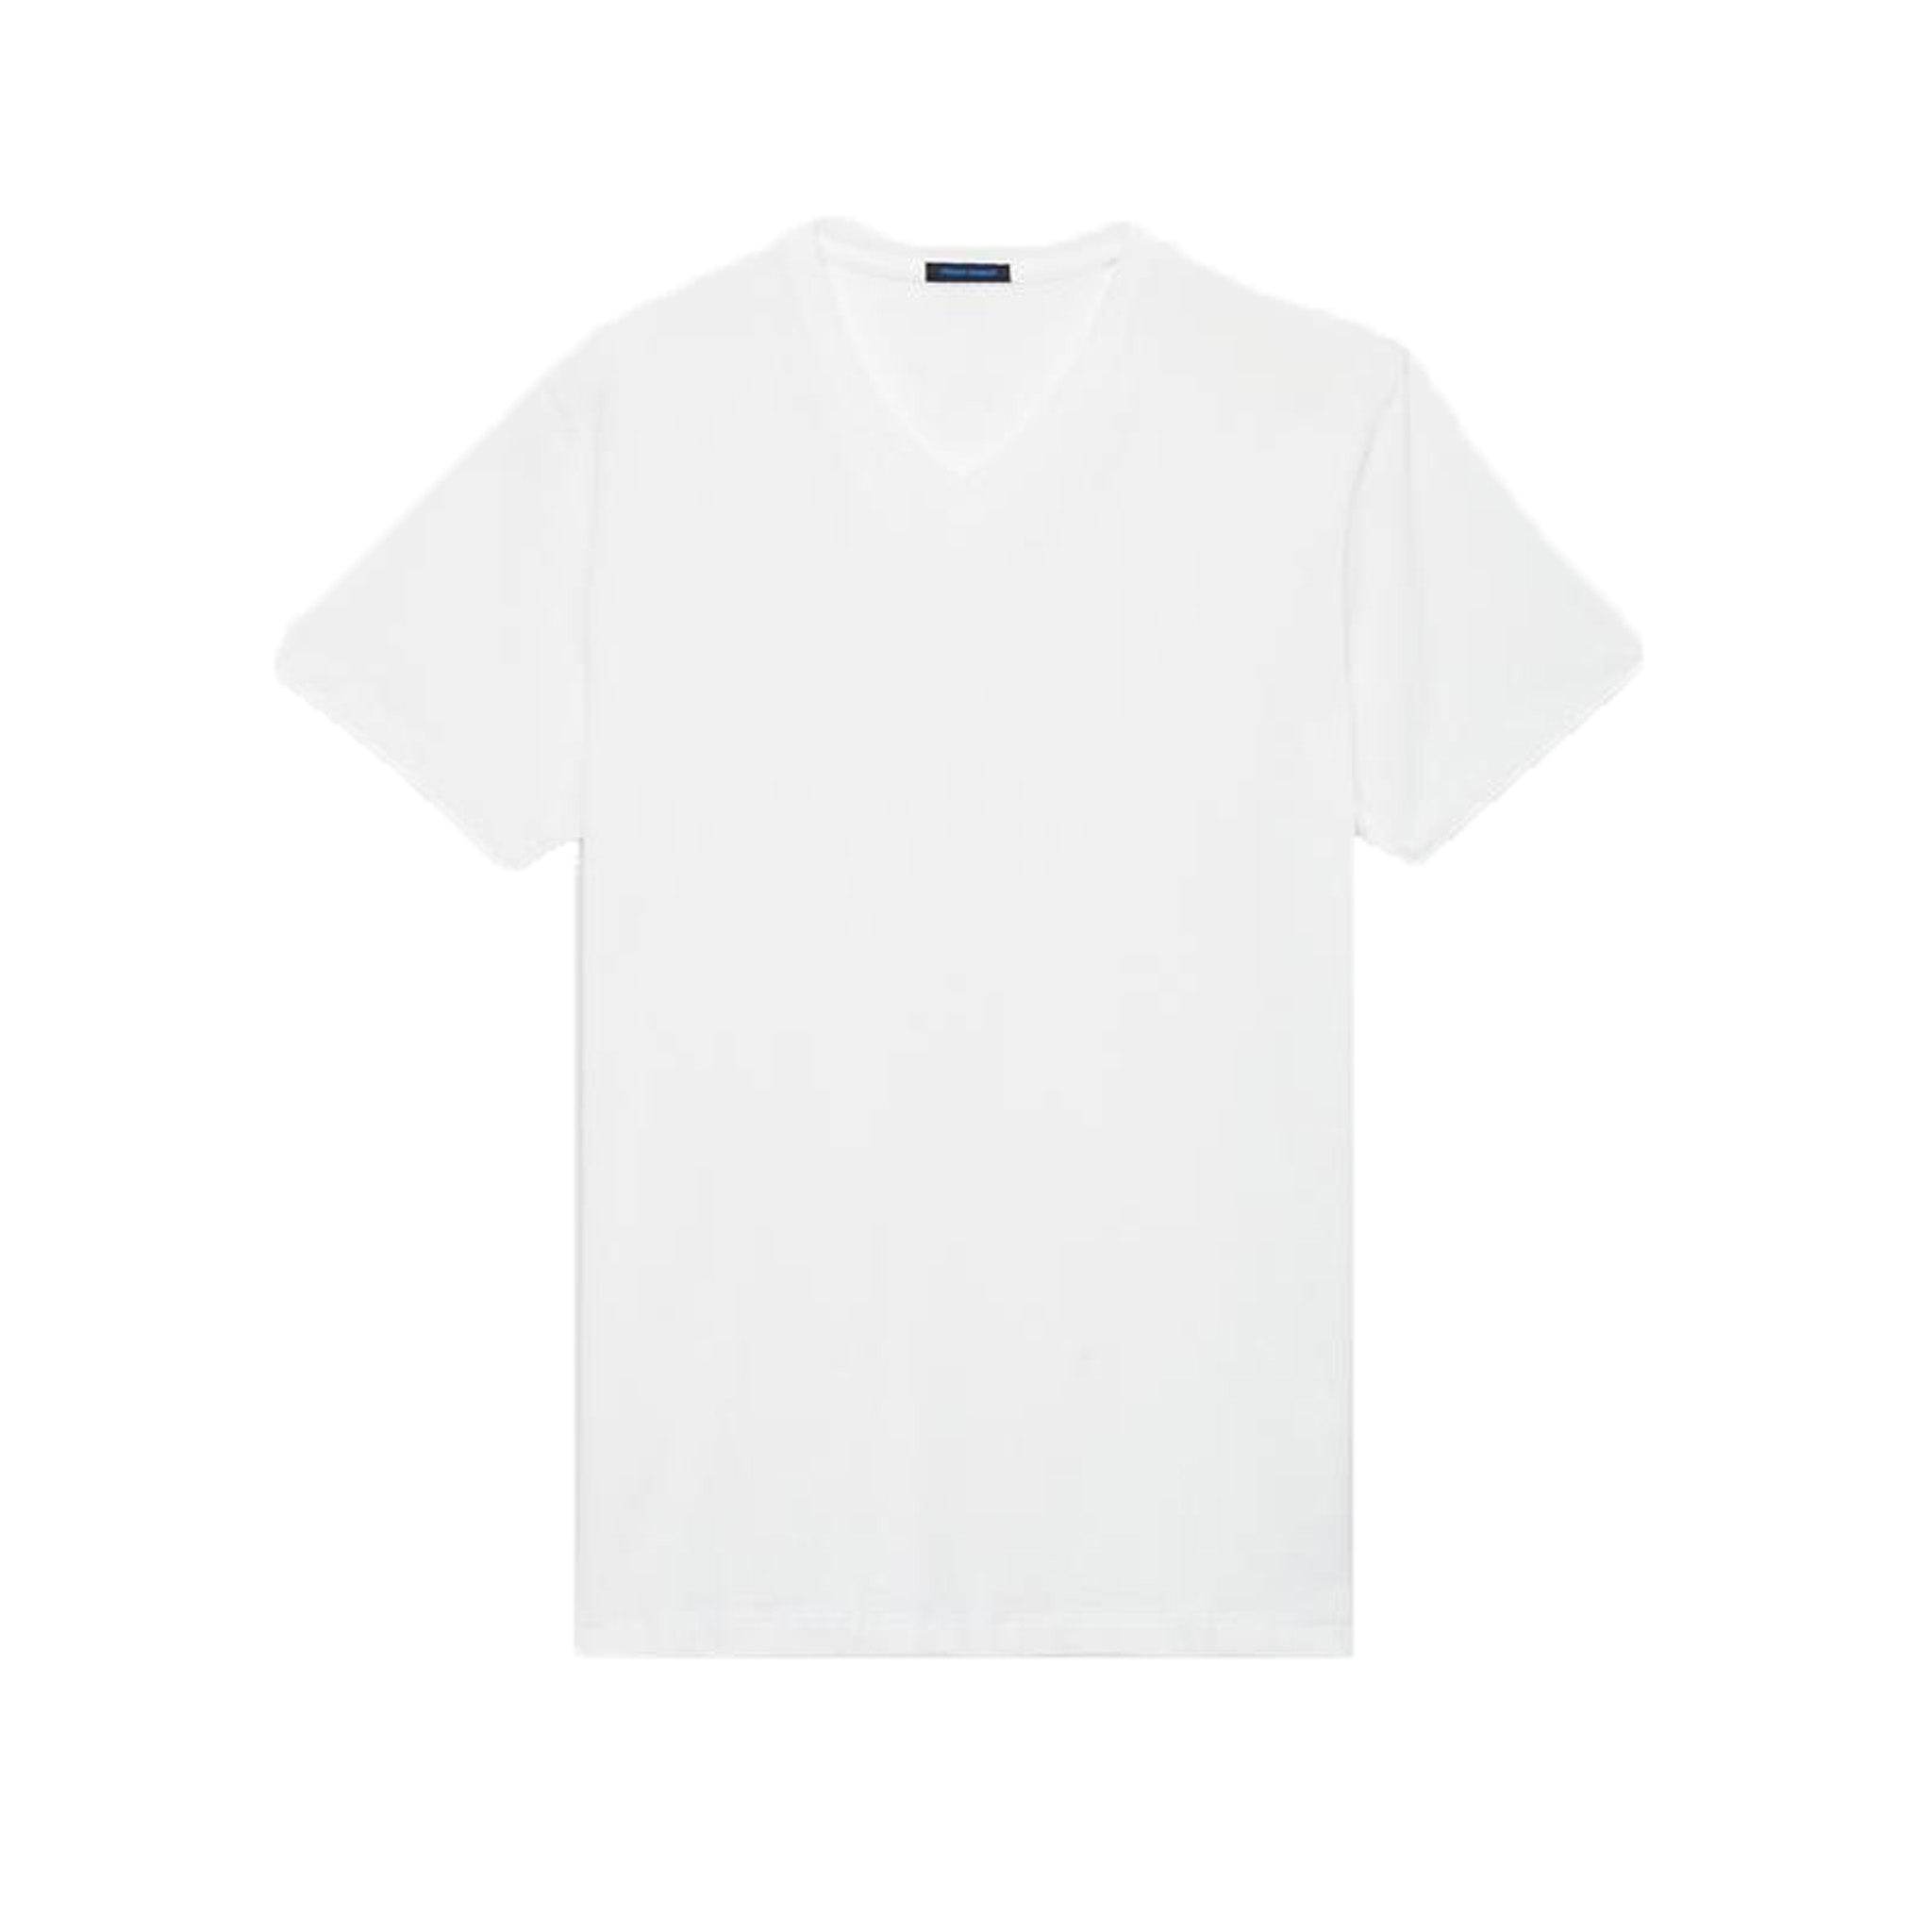 Essential V Neck White Pima Tee - Mr. Derk Apparel Ltd.